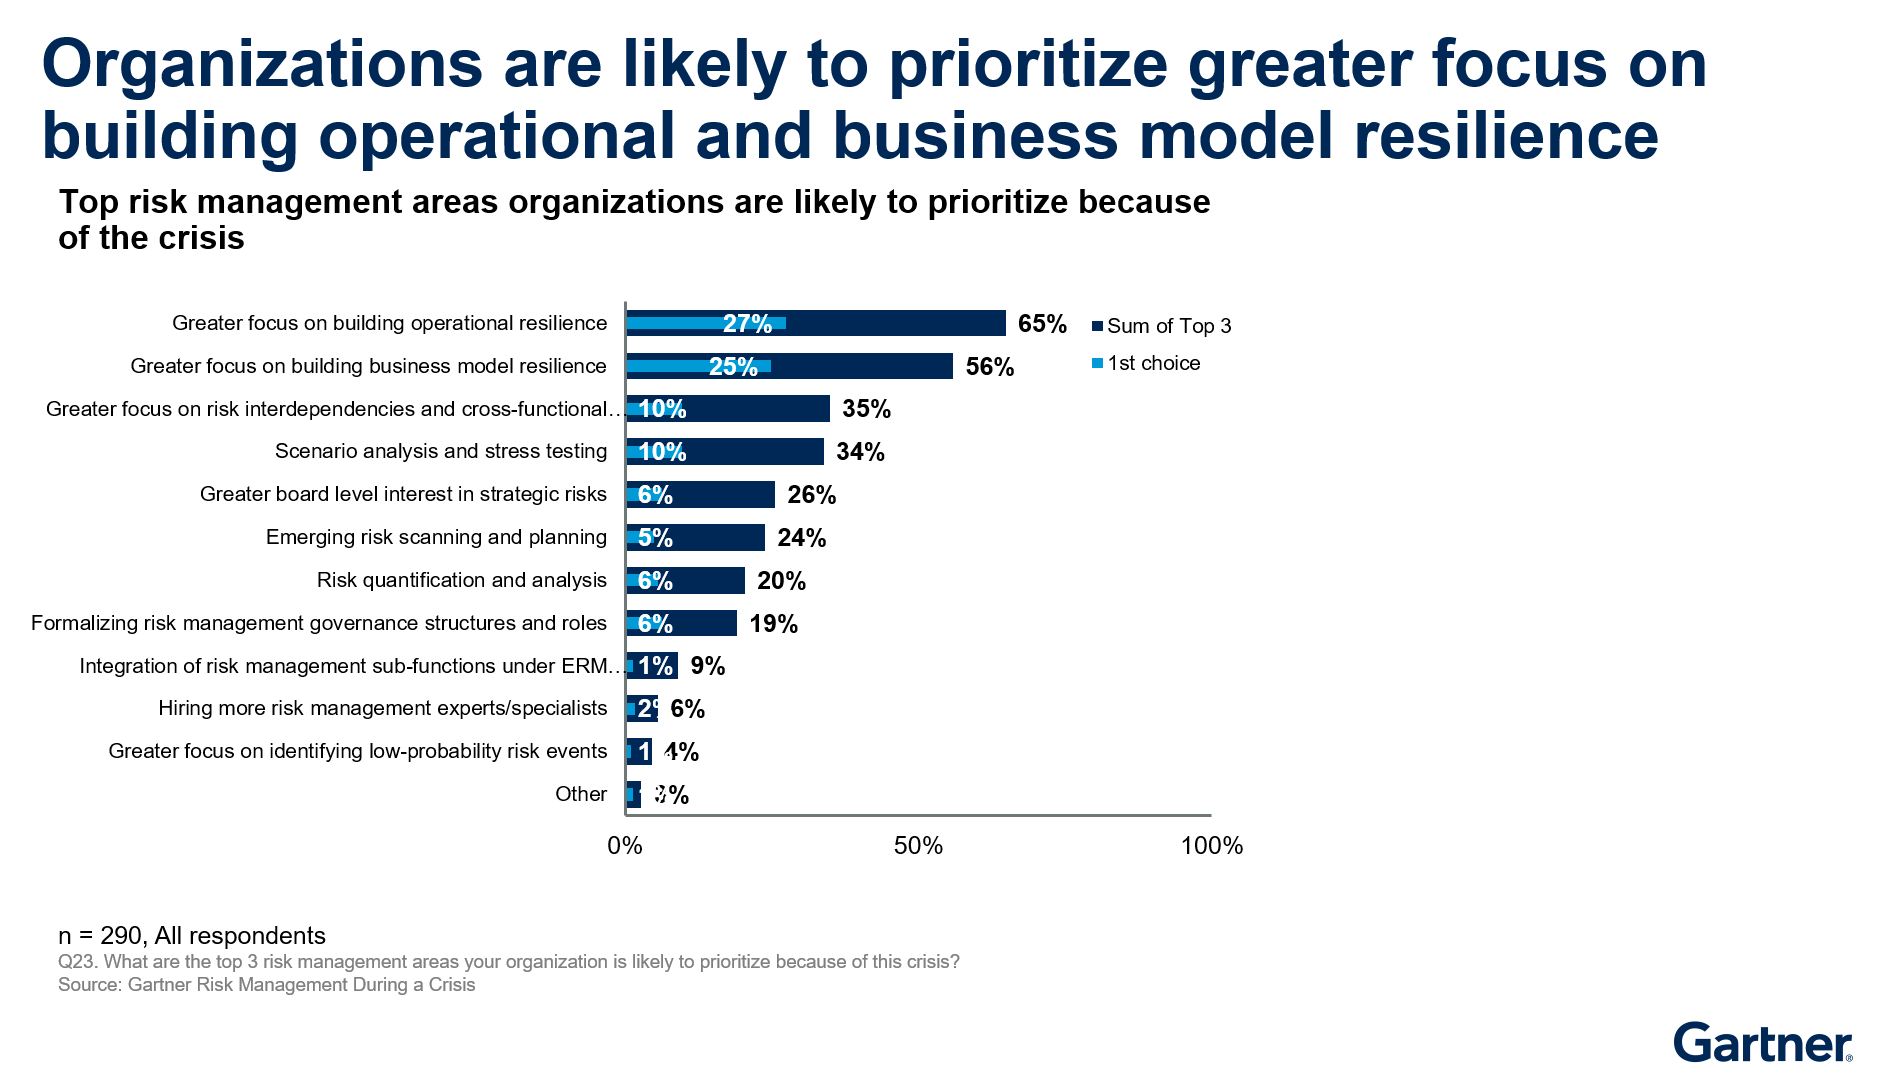 Figure 2. Top Risk Management Areas Organizations are Likely to Prioritize Because of the Crisis